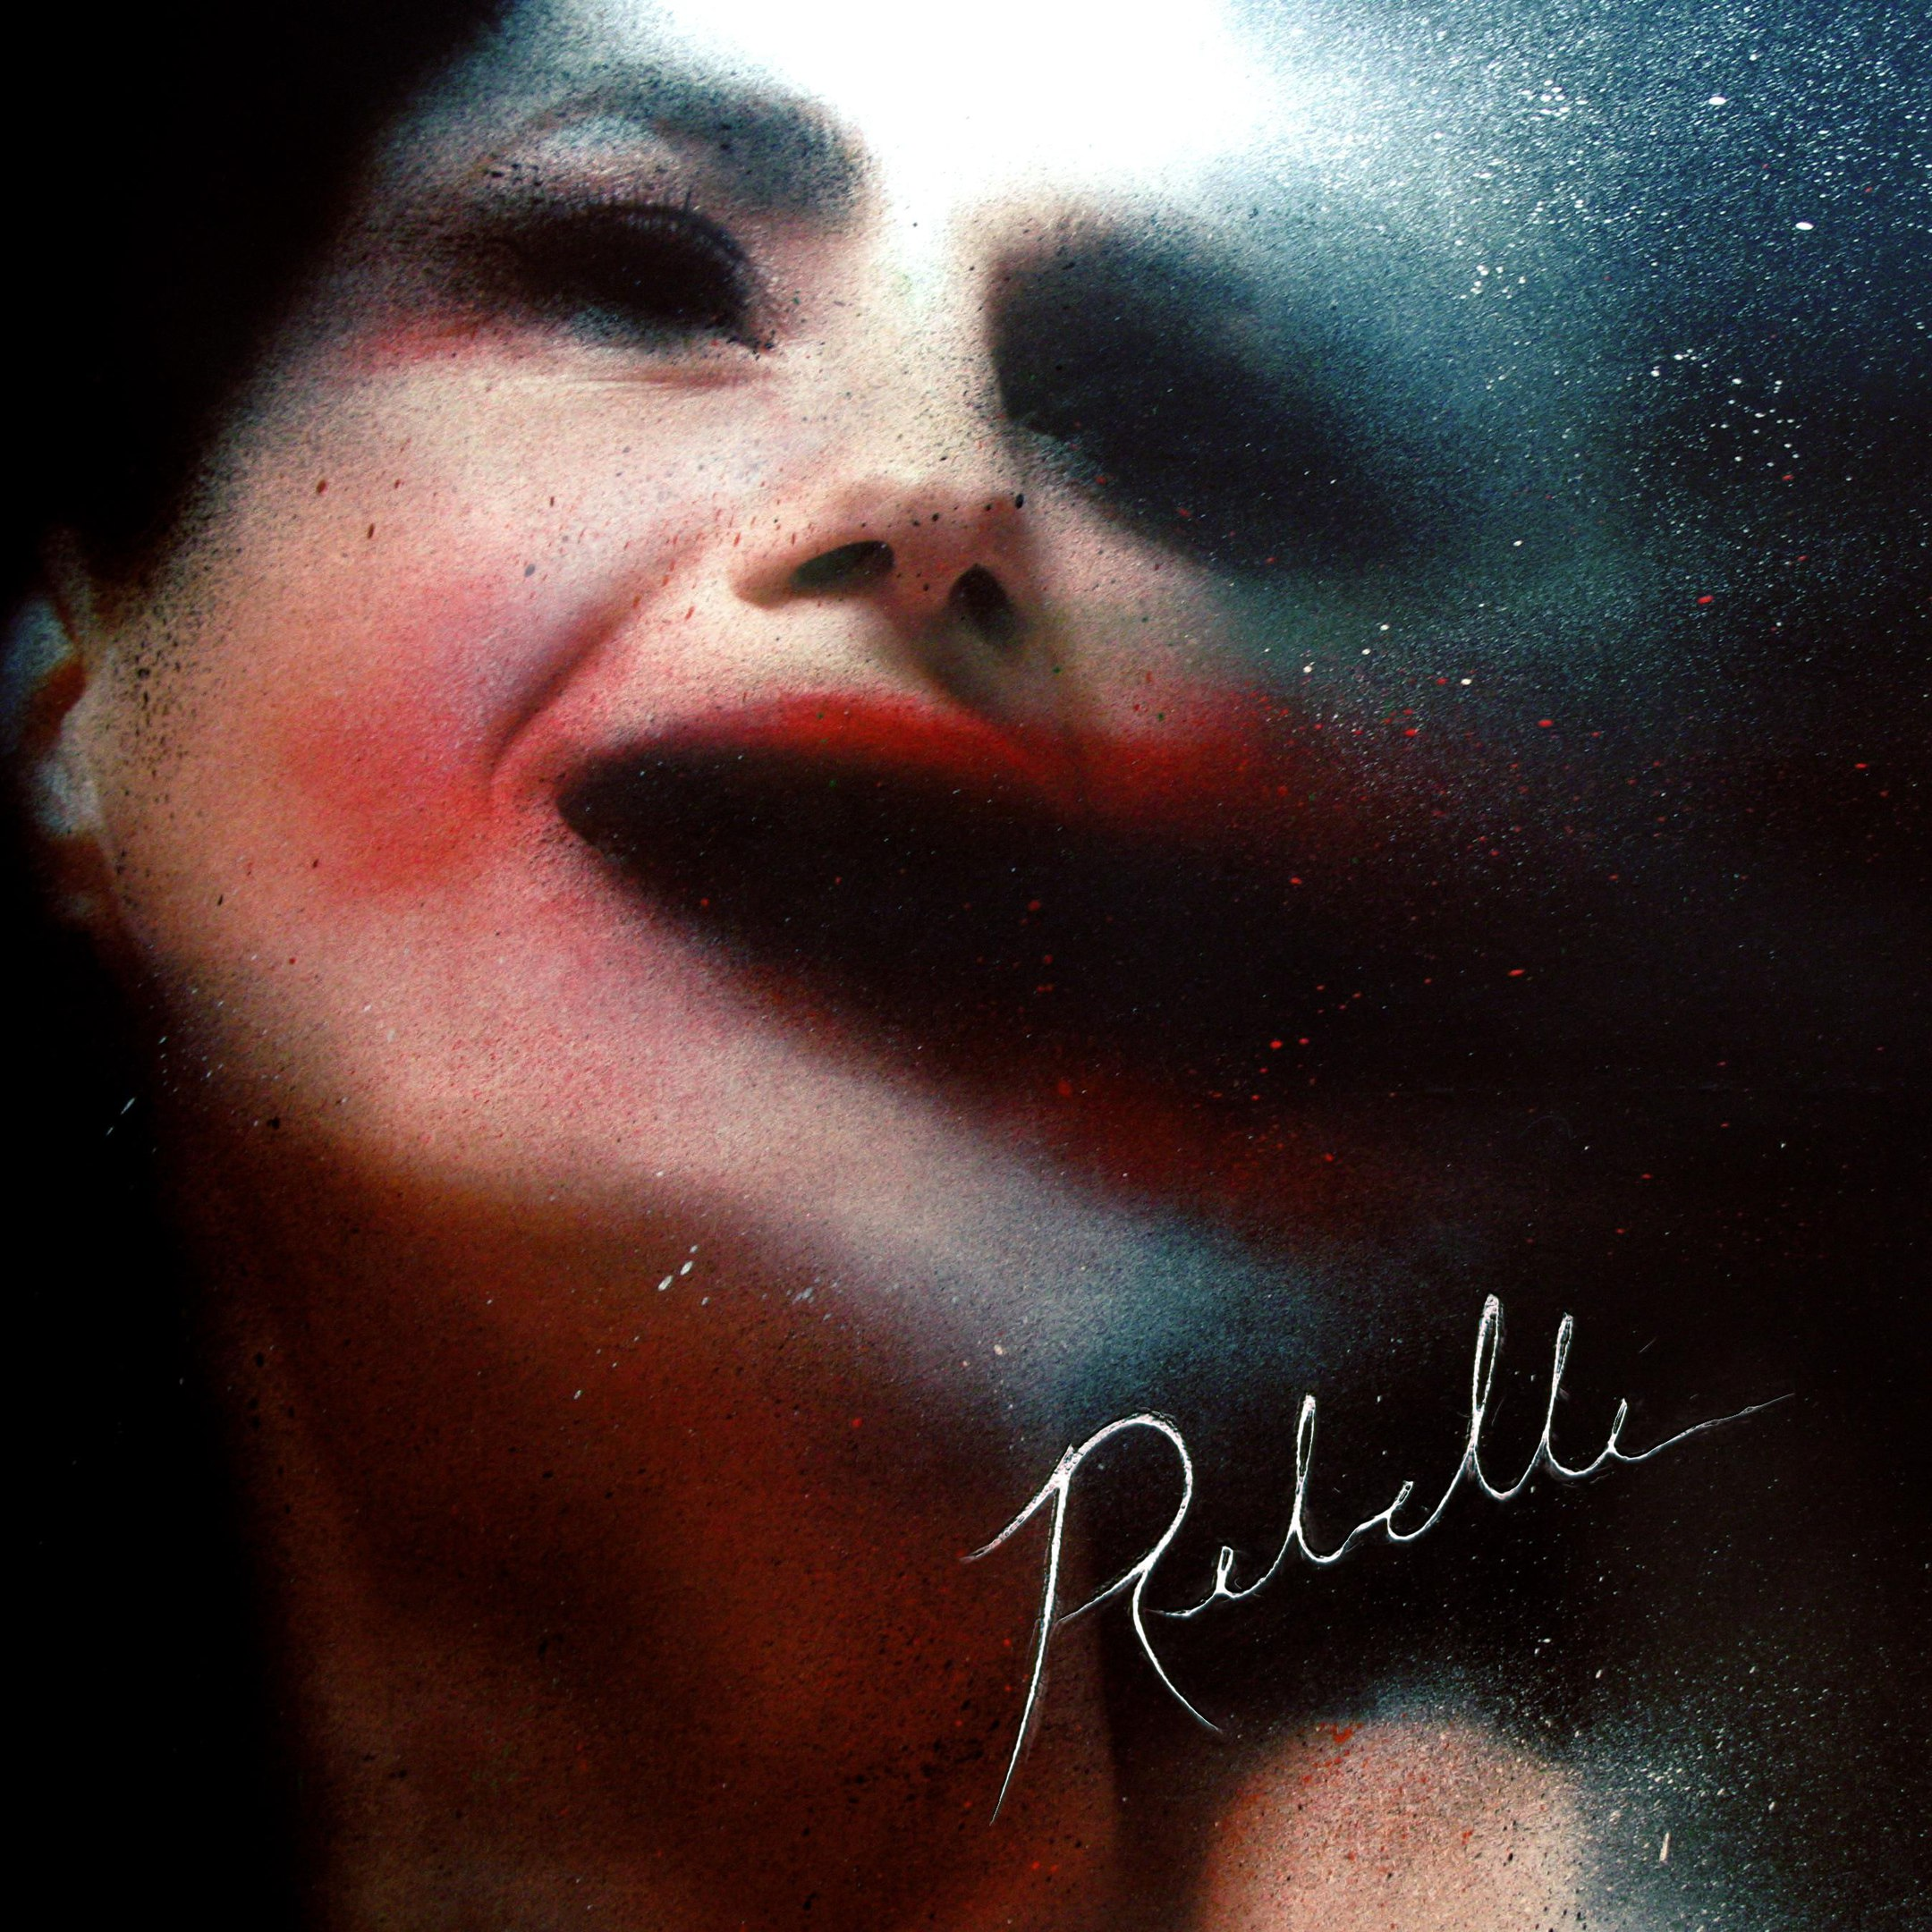 Rebelle - New songs from